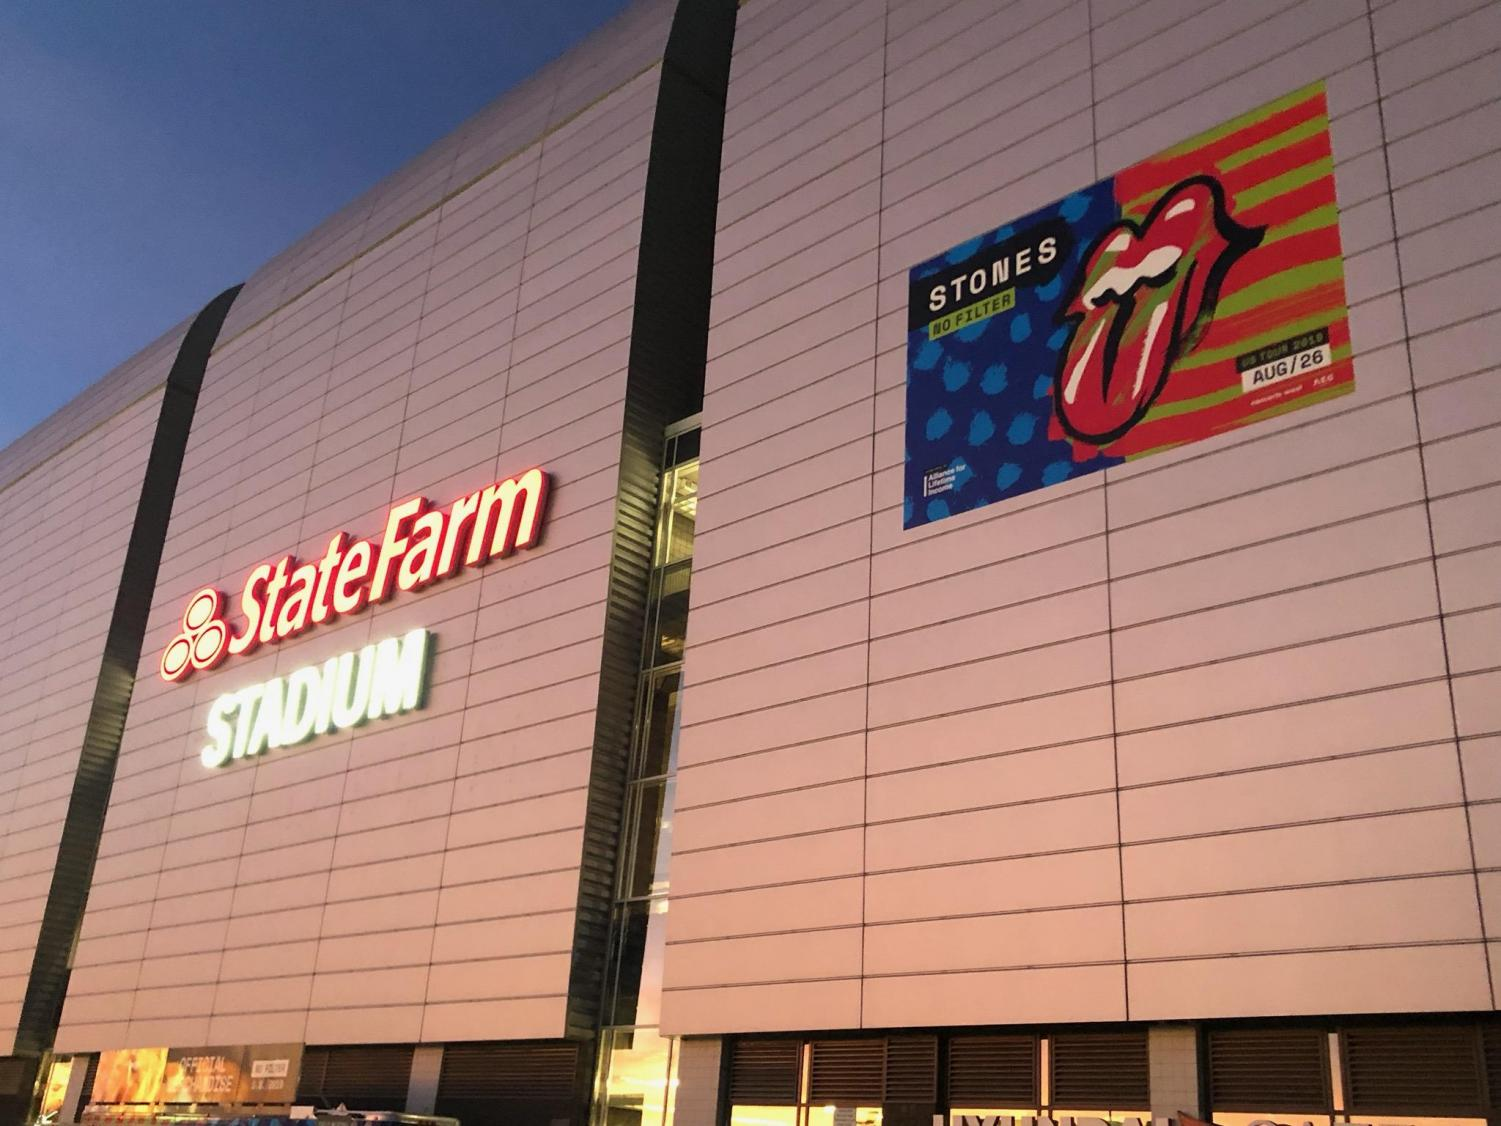 The outside of the State Farm Stadium with the poster for the show